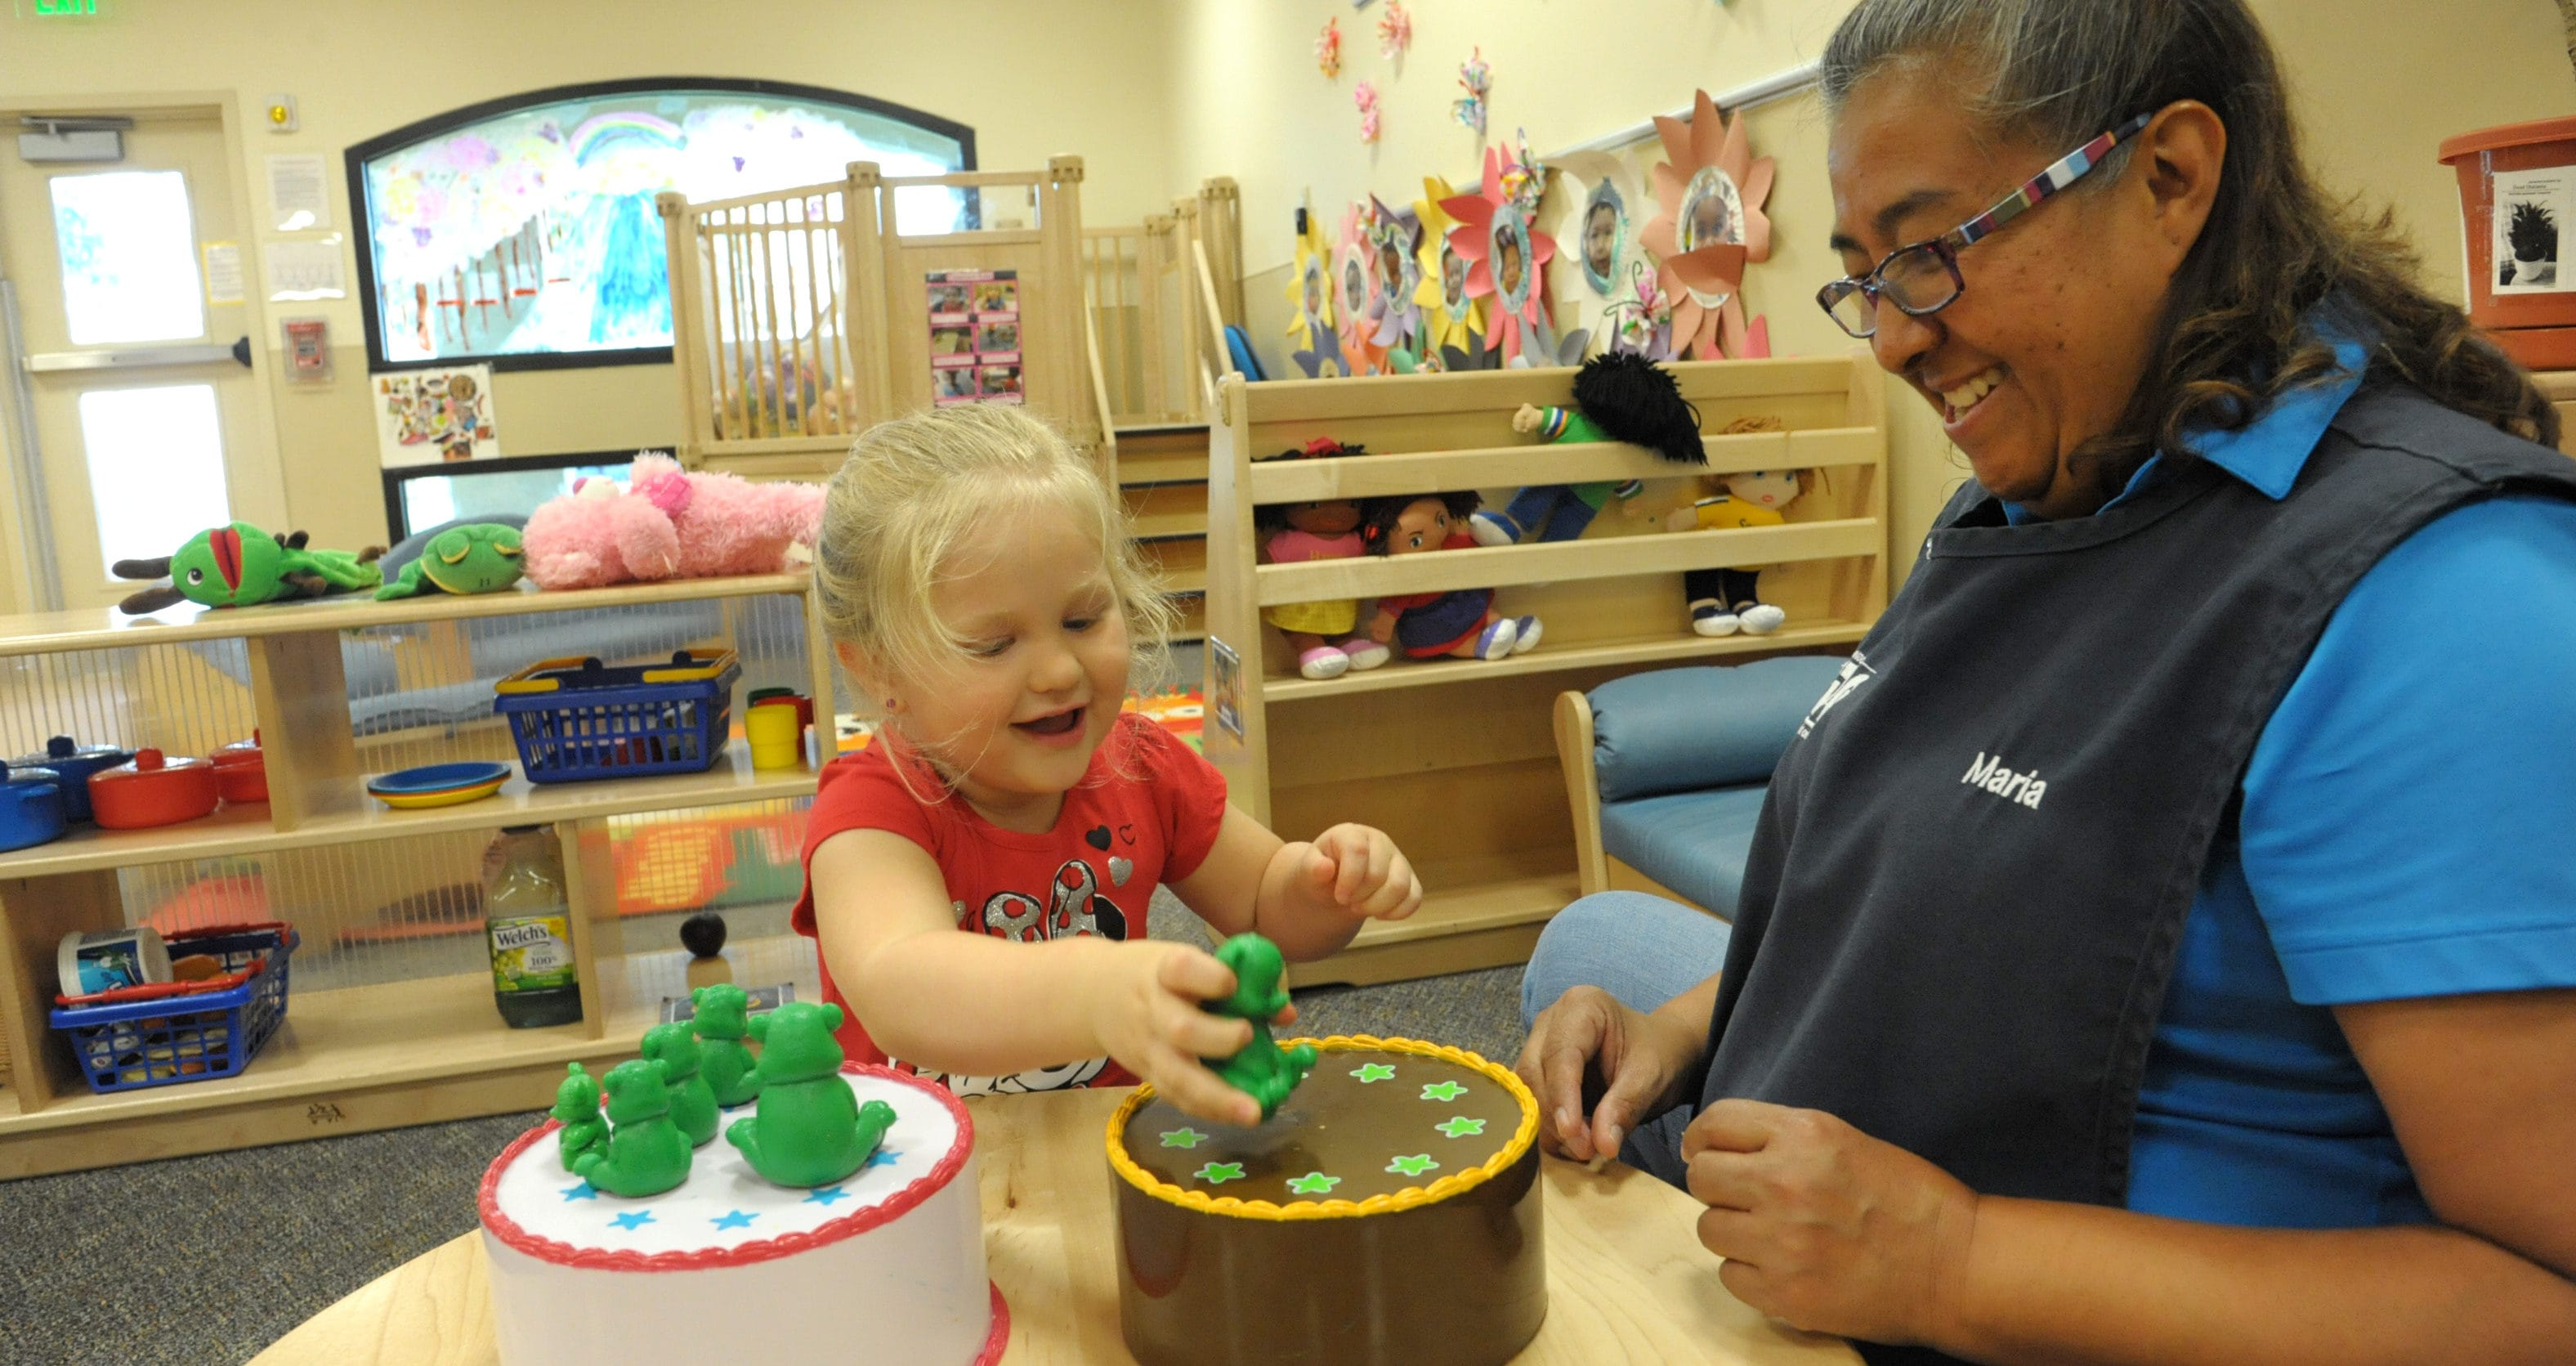 Connecticut must address crisis in affordable, high-quality early childcare